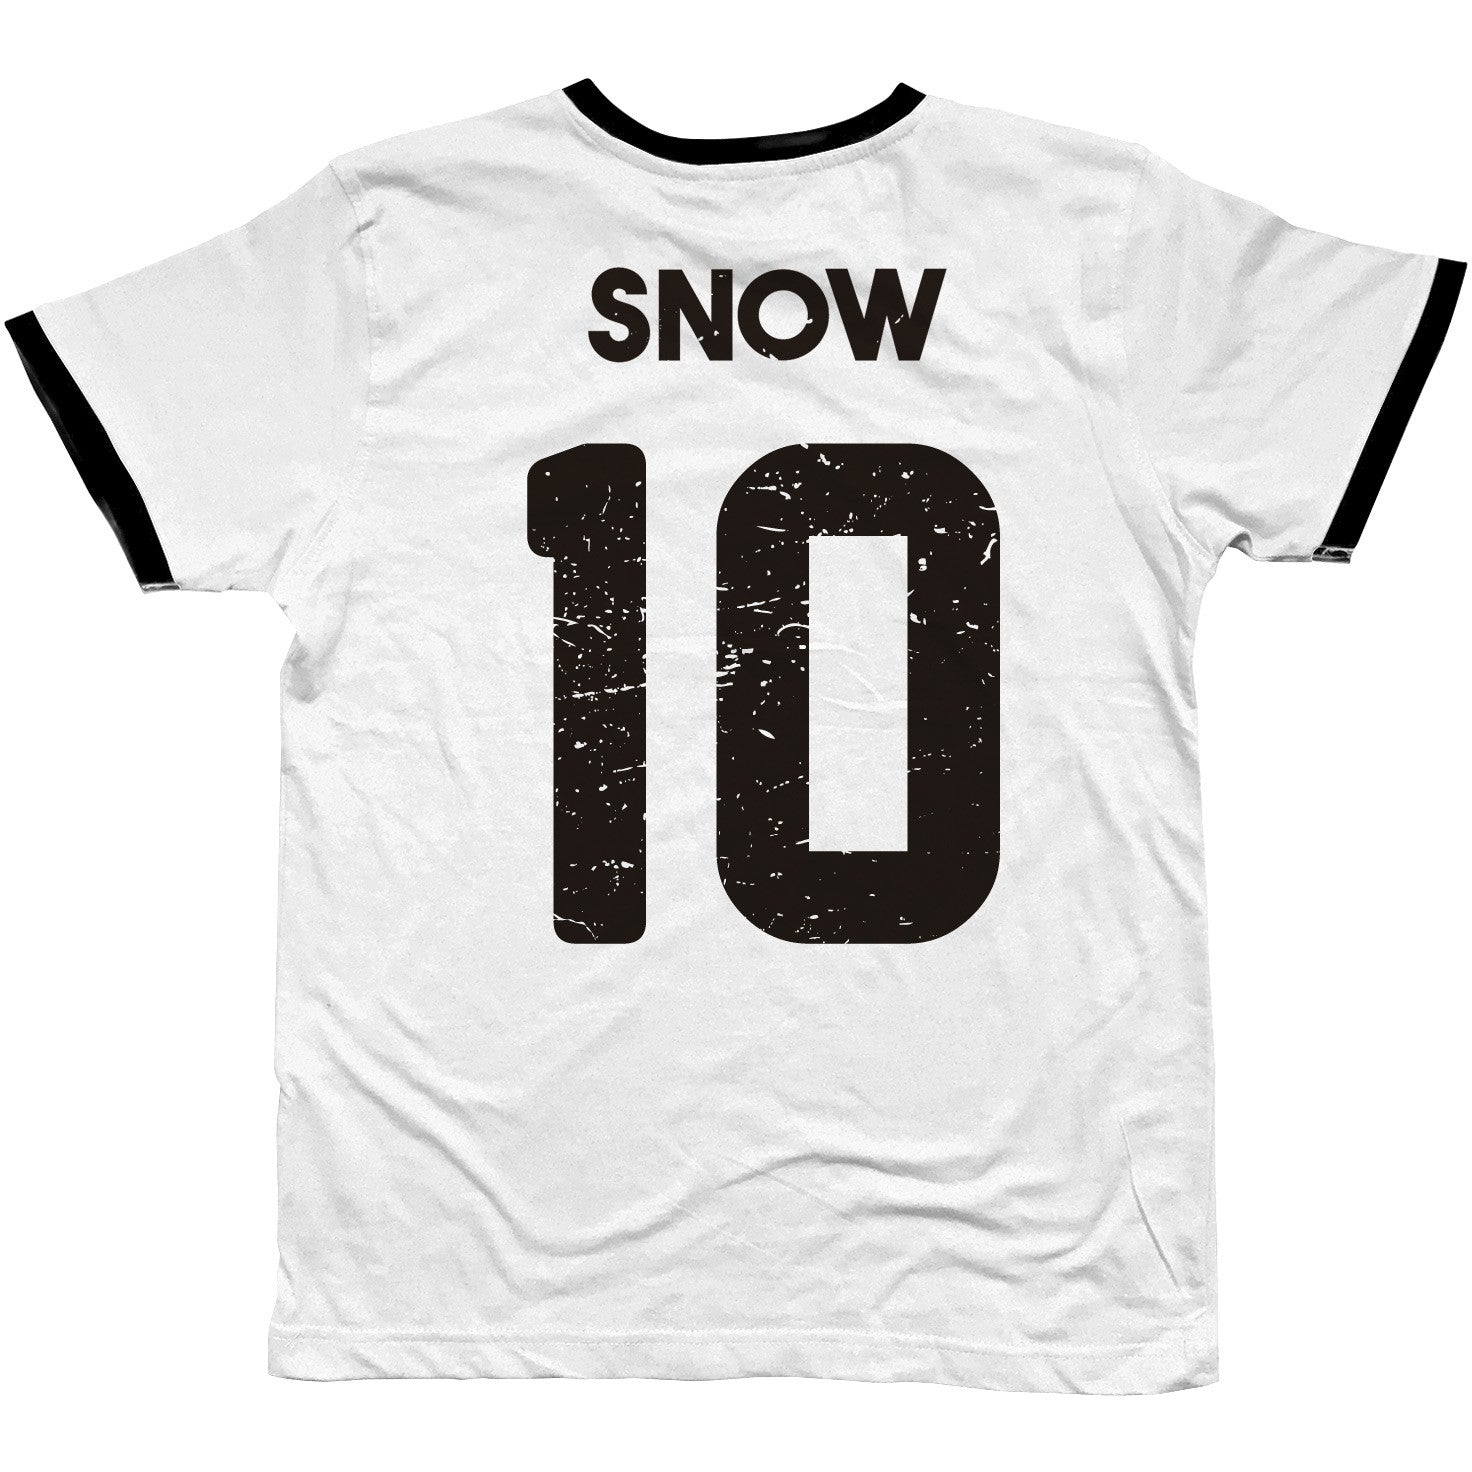 stark game of thrones snow football t-shirt by suxinsu